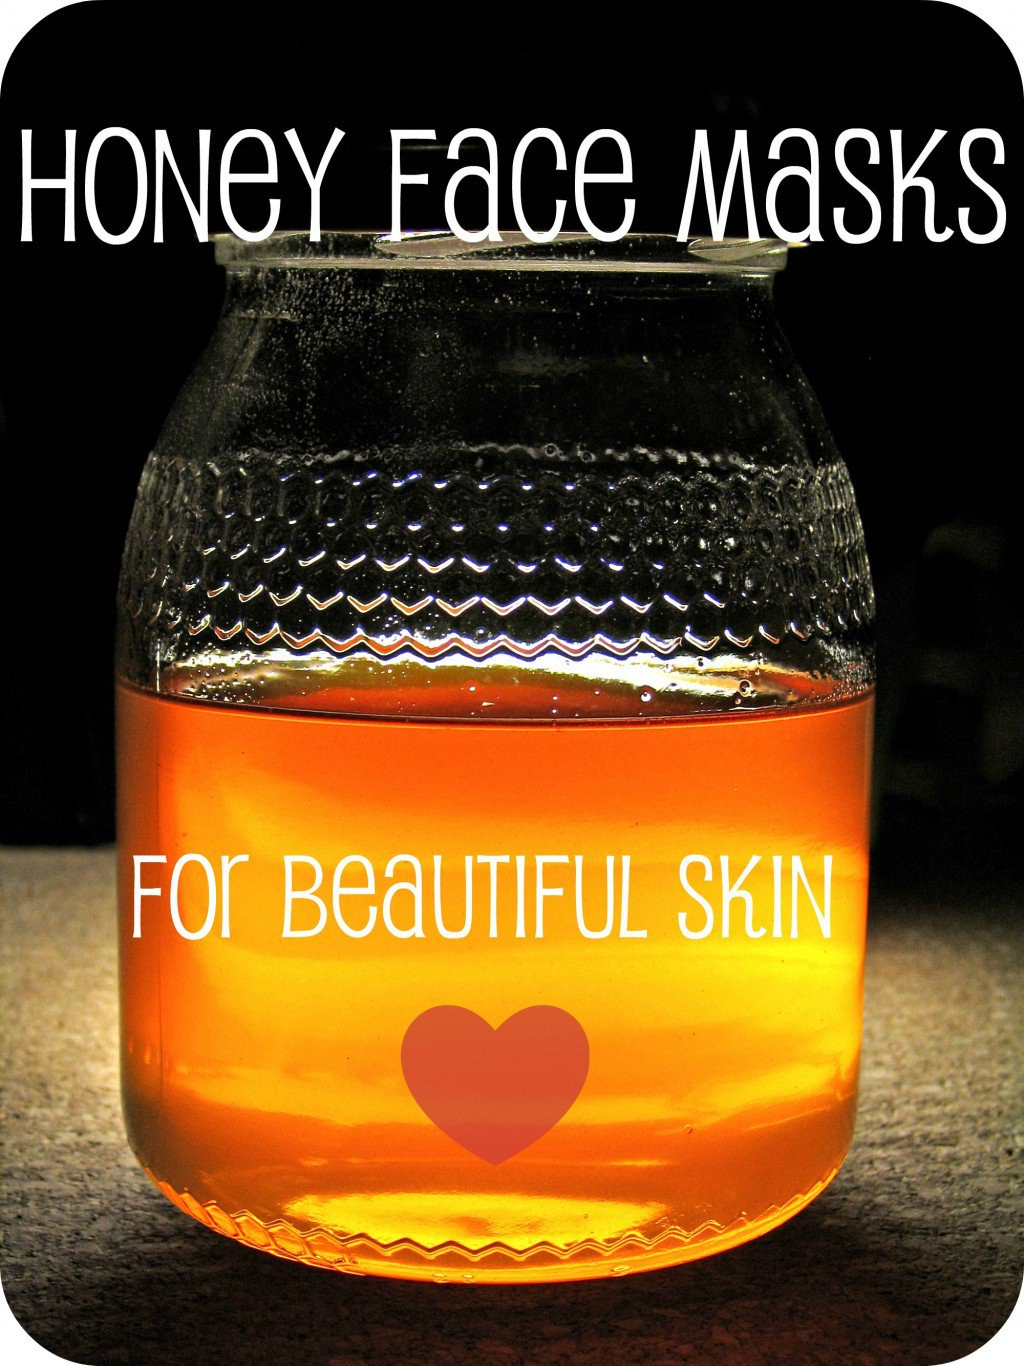 Best ideas about Honey Face Mask DIY . Save or Pin Homemade Honey Face Mask Recipes for Beautiful Skin Now.